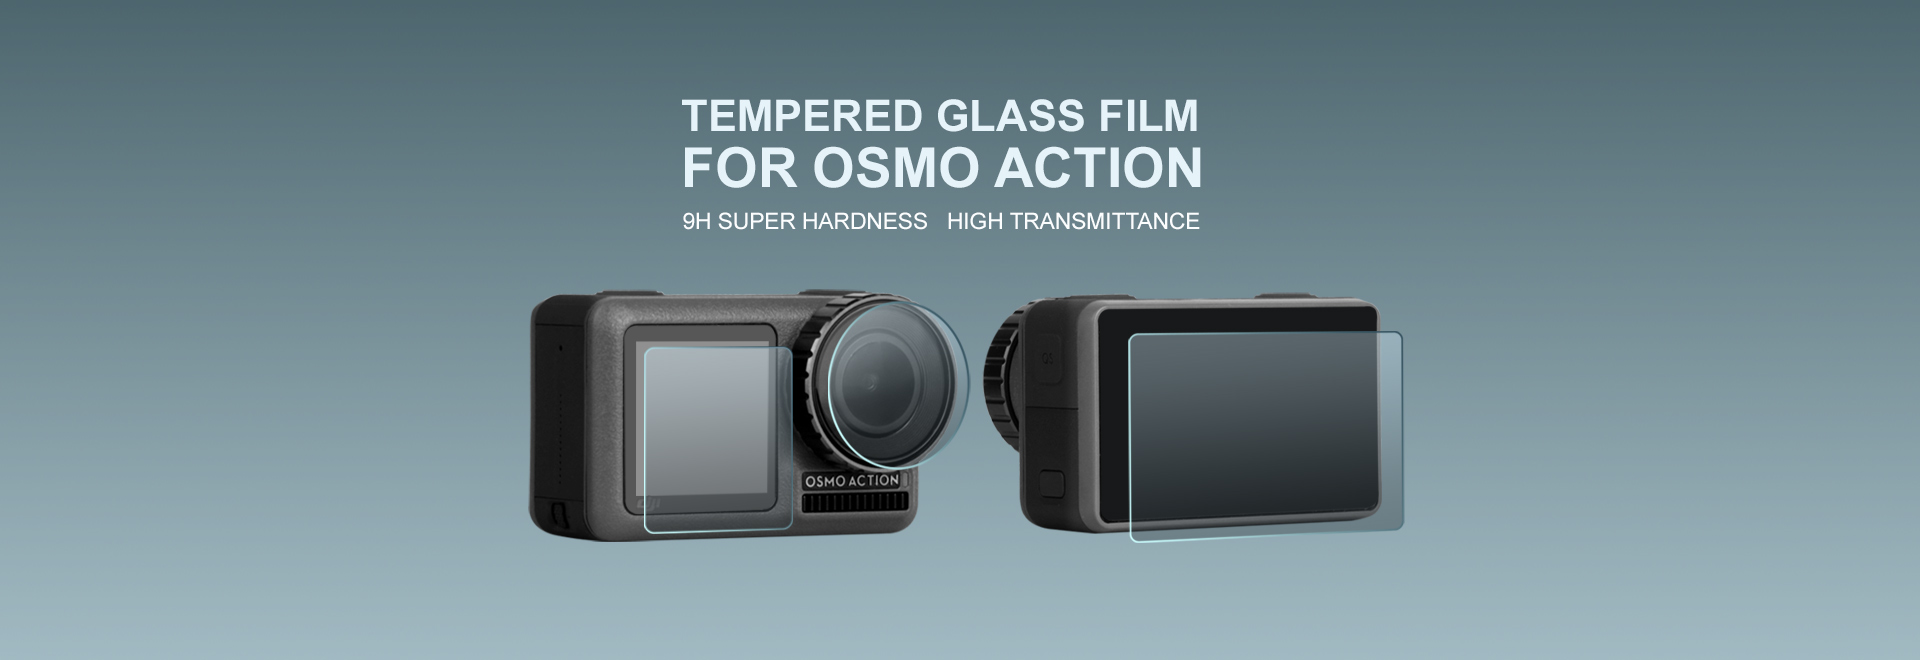 Tempered Glass Film for OSMO ACTION